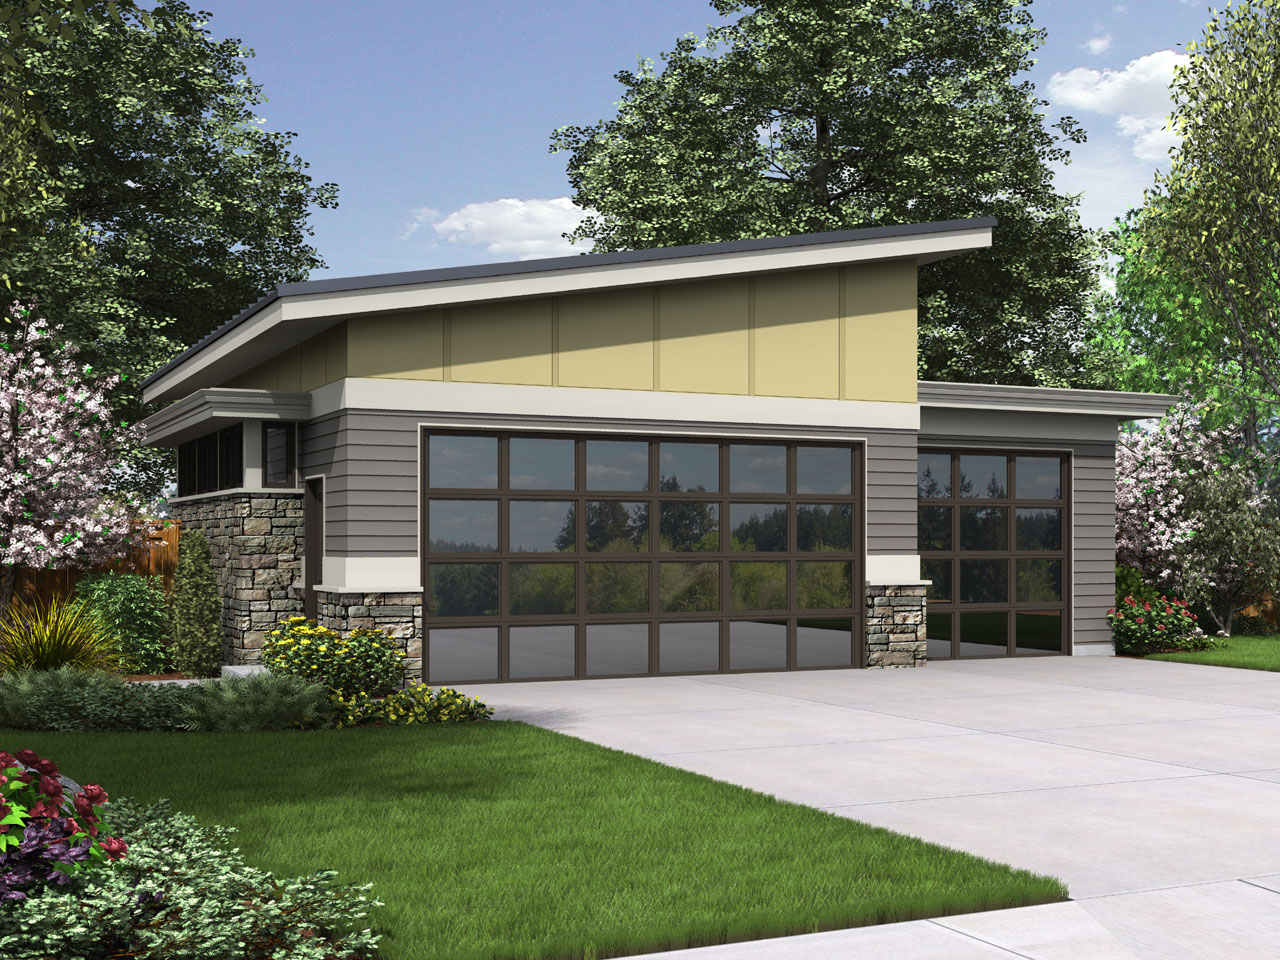 Contemporary Style House Plans Plan: 74-797